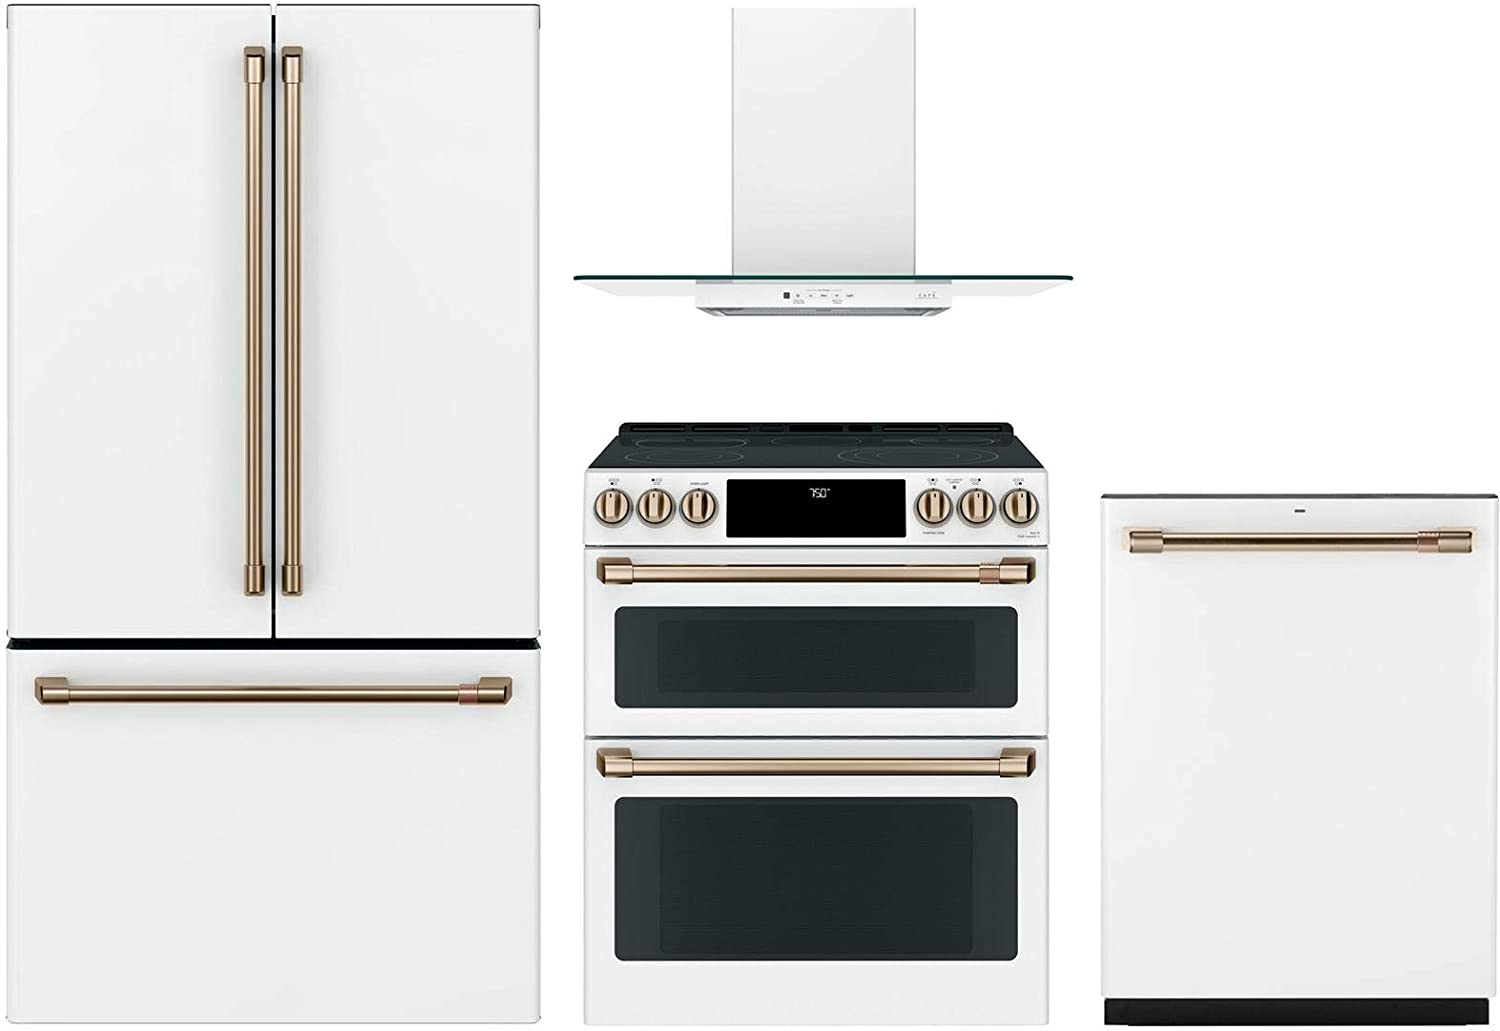 """GE Cafe 4 Piece KitchenPackage CWE23SP4MW2 36""""Smart French Door Refrigerator,CES750P4MW2 30""""Smart Electric Range,CVW73014MWM 30""""Wall Mount Ducted Hood CDT836P4MW2 24""""Built In Dishwasher in Matte White"""